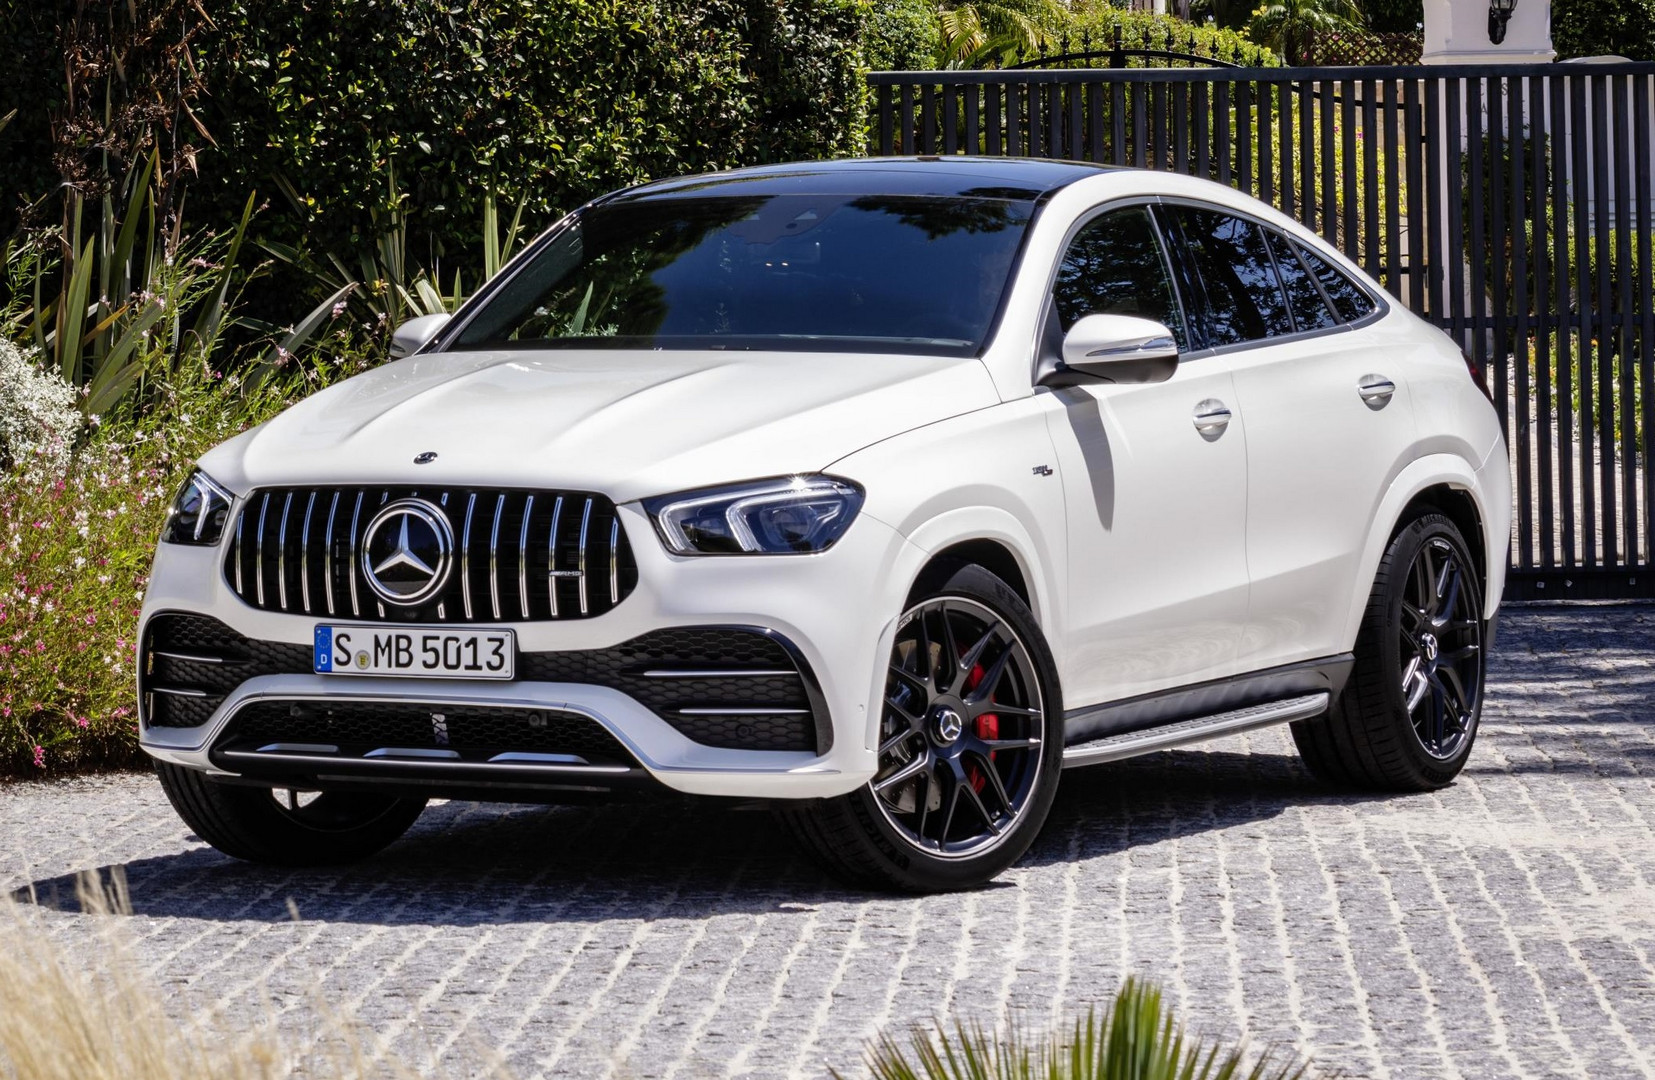 Mercedes-AMG GLE 53 Coupe 0-100